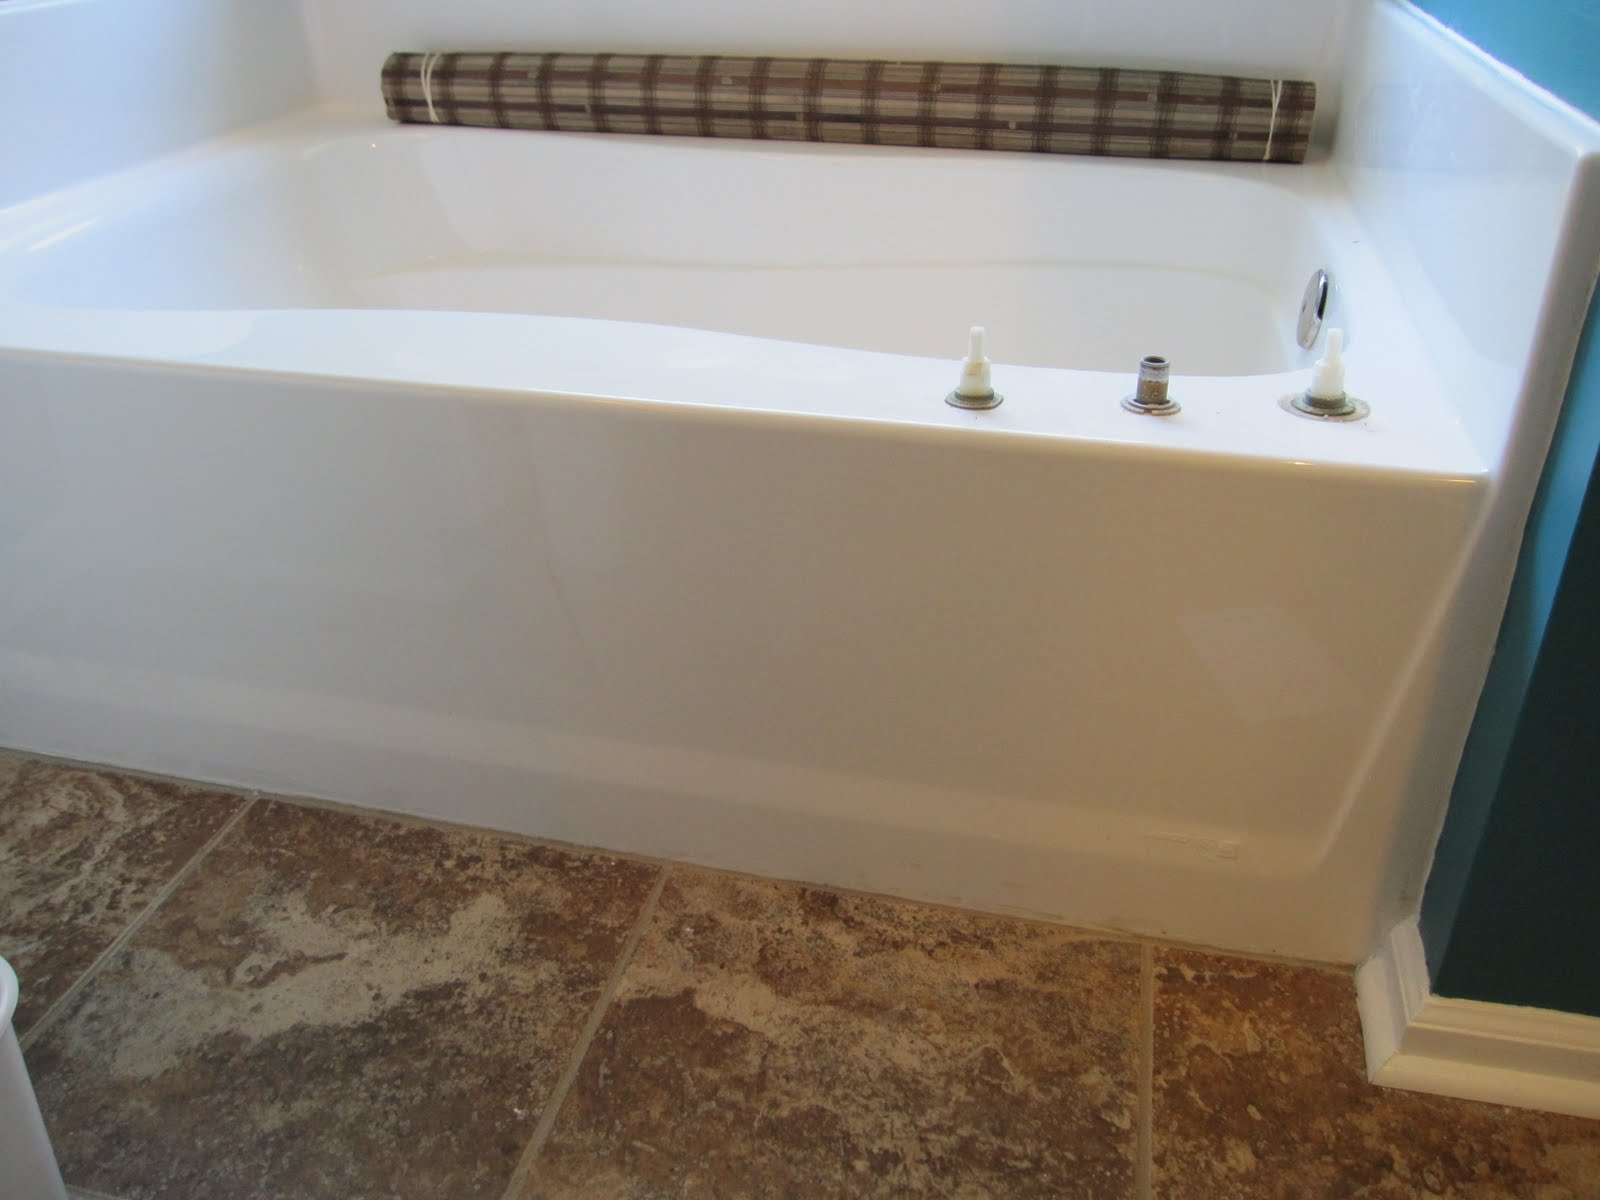 Well The Problem Is Tub I Did Not Want To Replace When It A Very Nice Also Didn T Them Rip Out Put